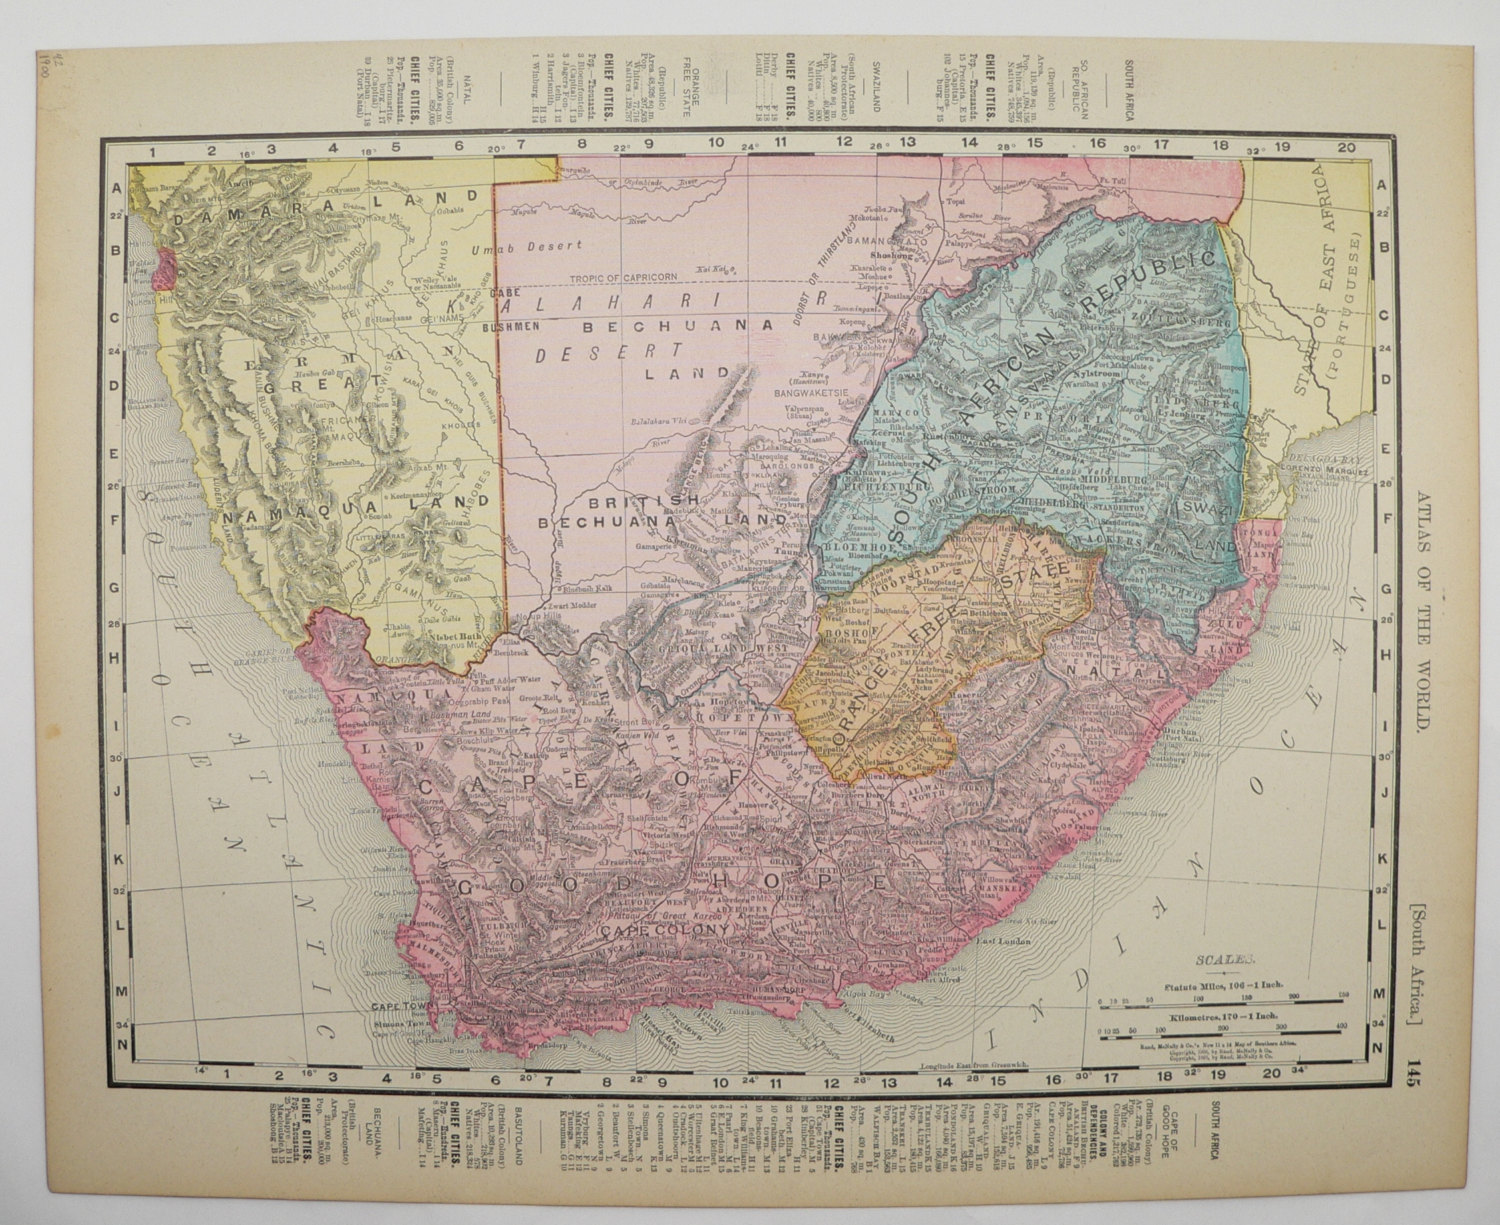 South Africa Antique 1900 Map Cape Old Maps and Prints